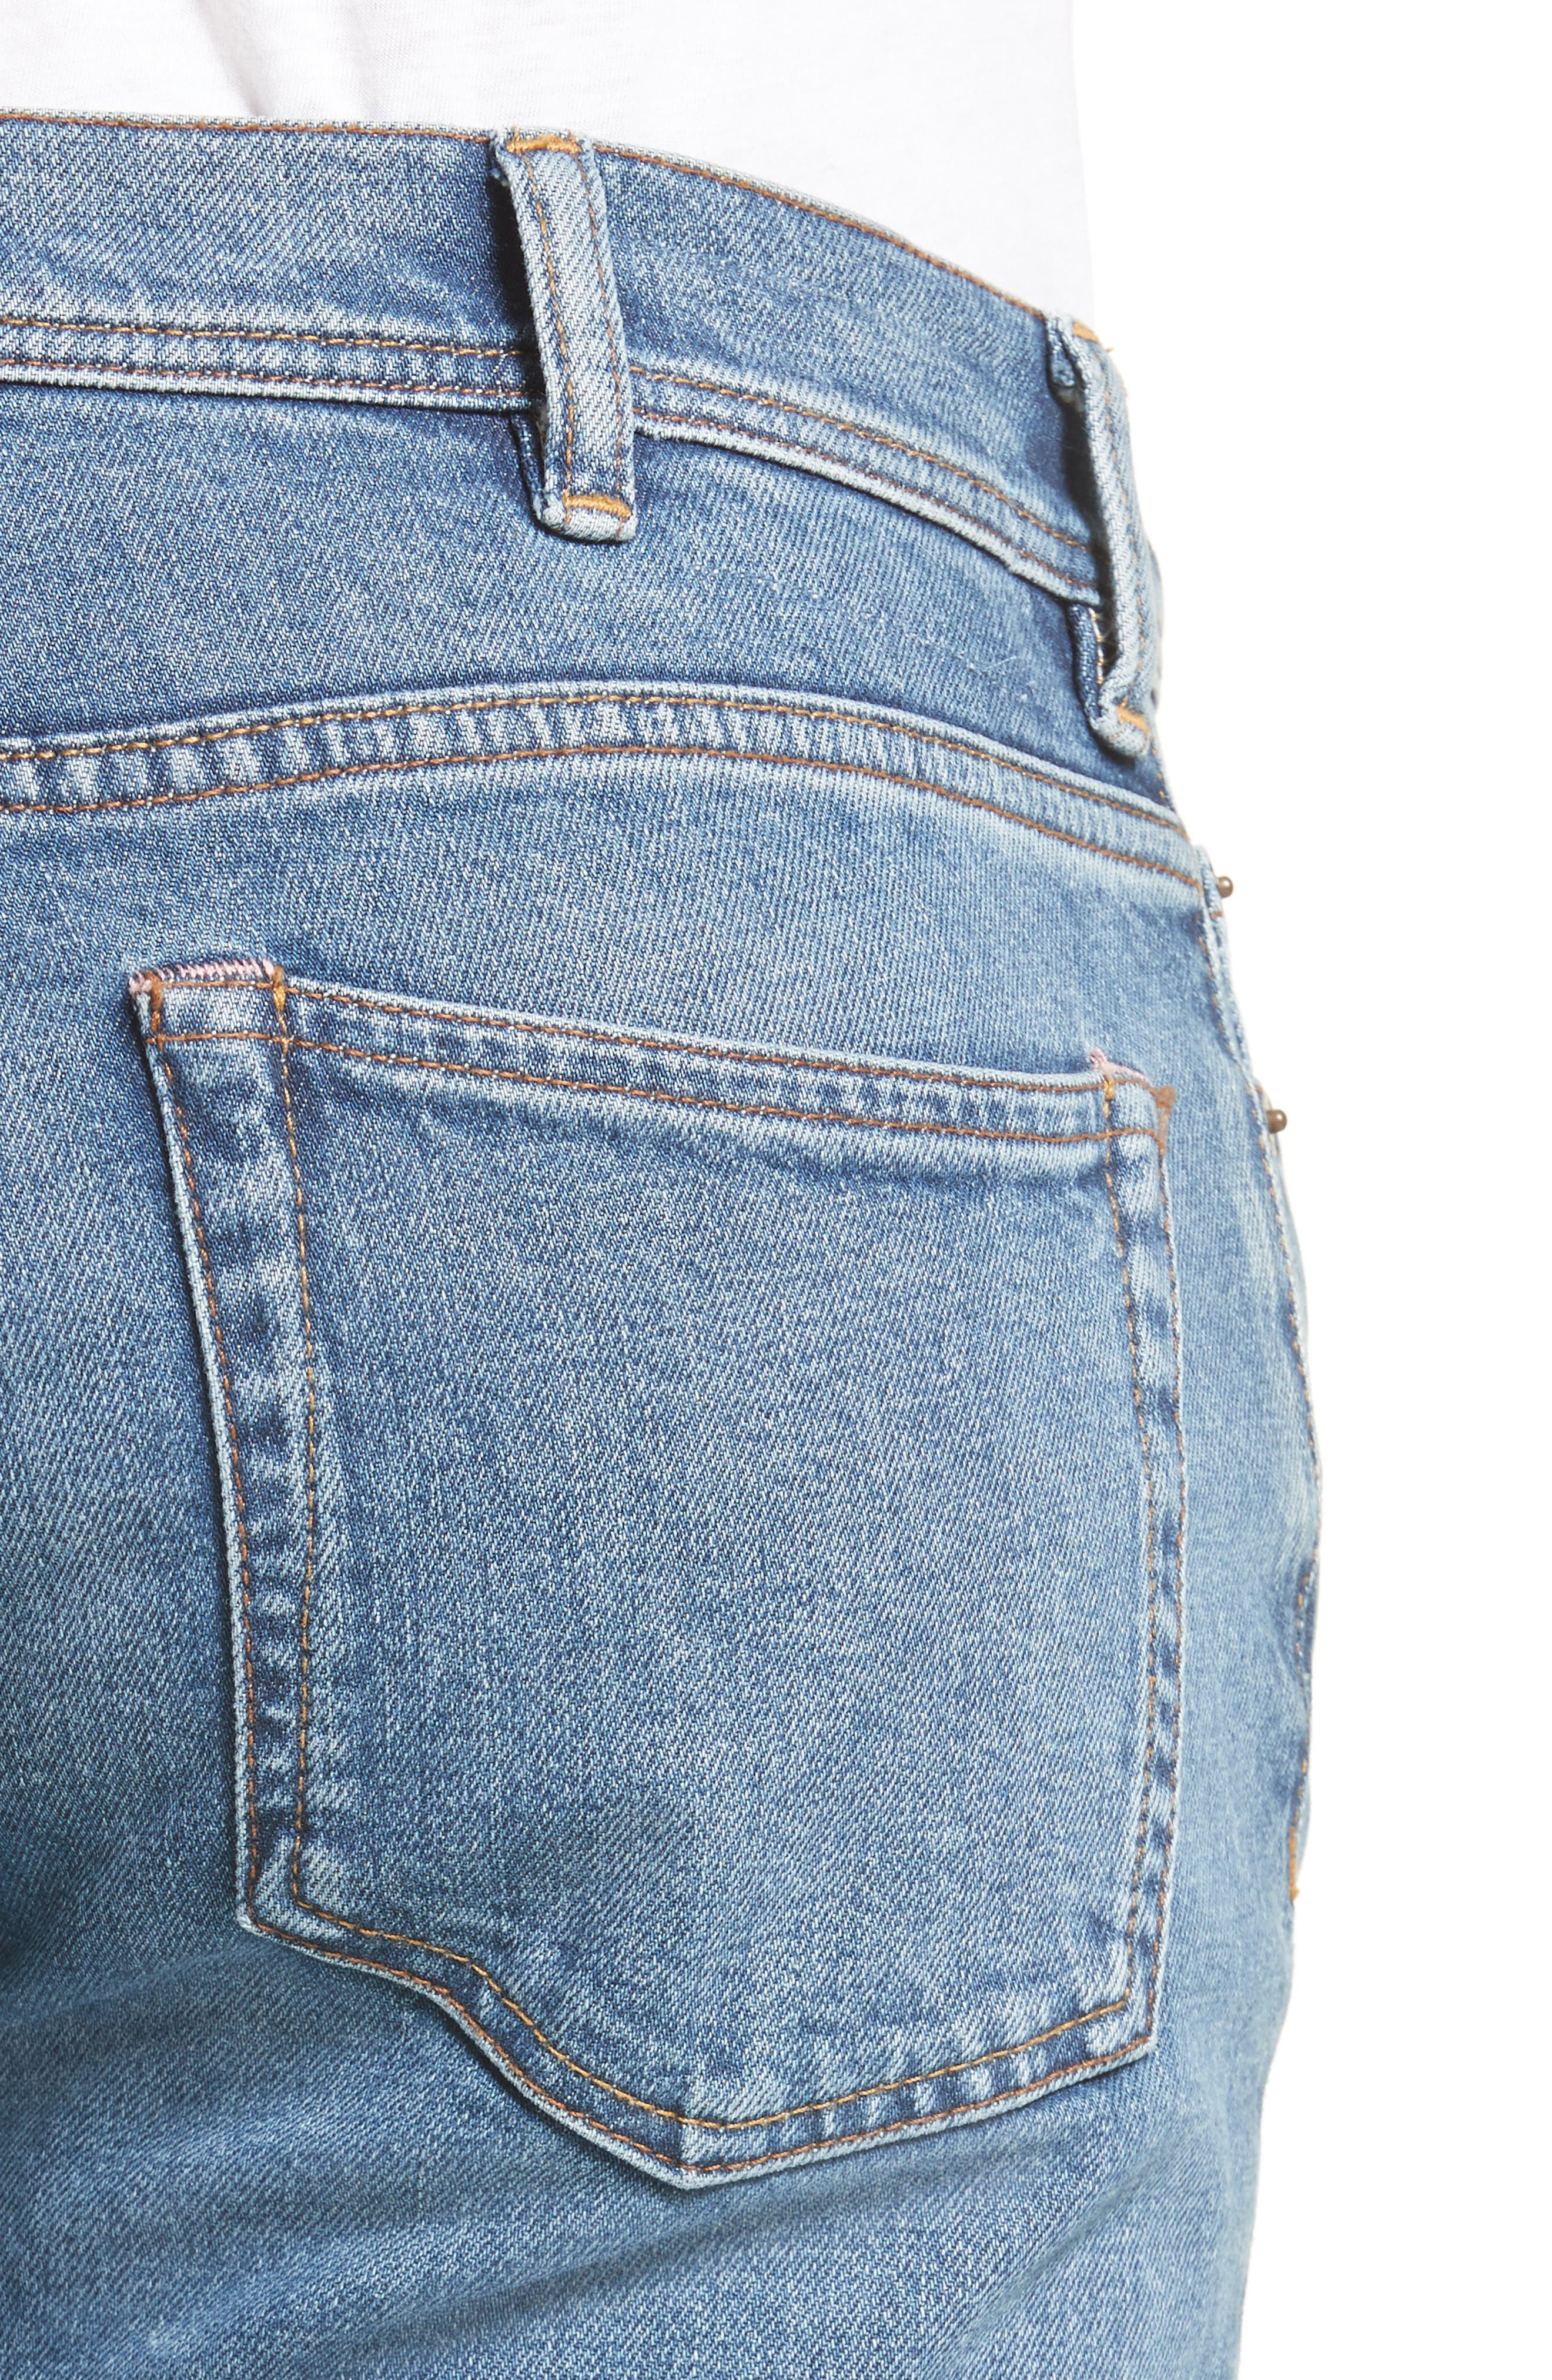 North Skinny Jeans,                             Alternate thumbnail 4, color,                             Mid Blue